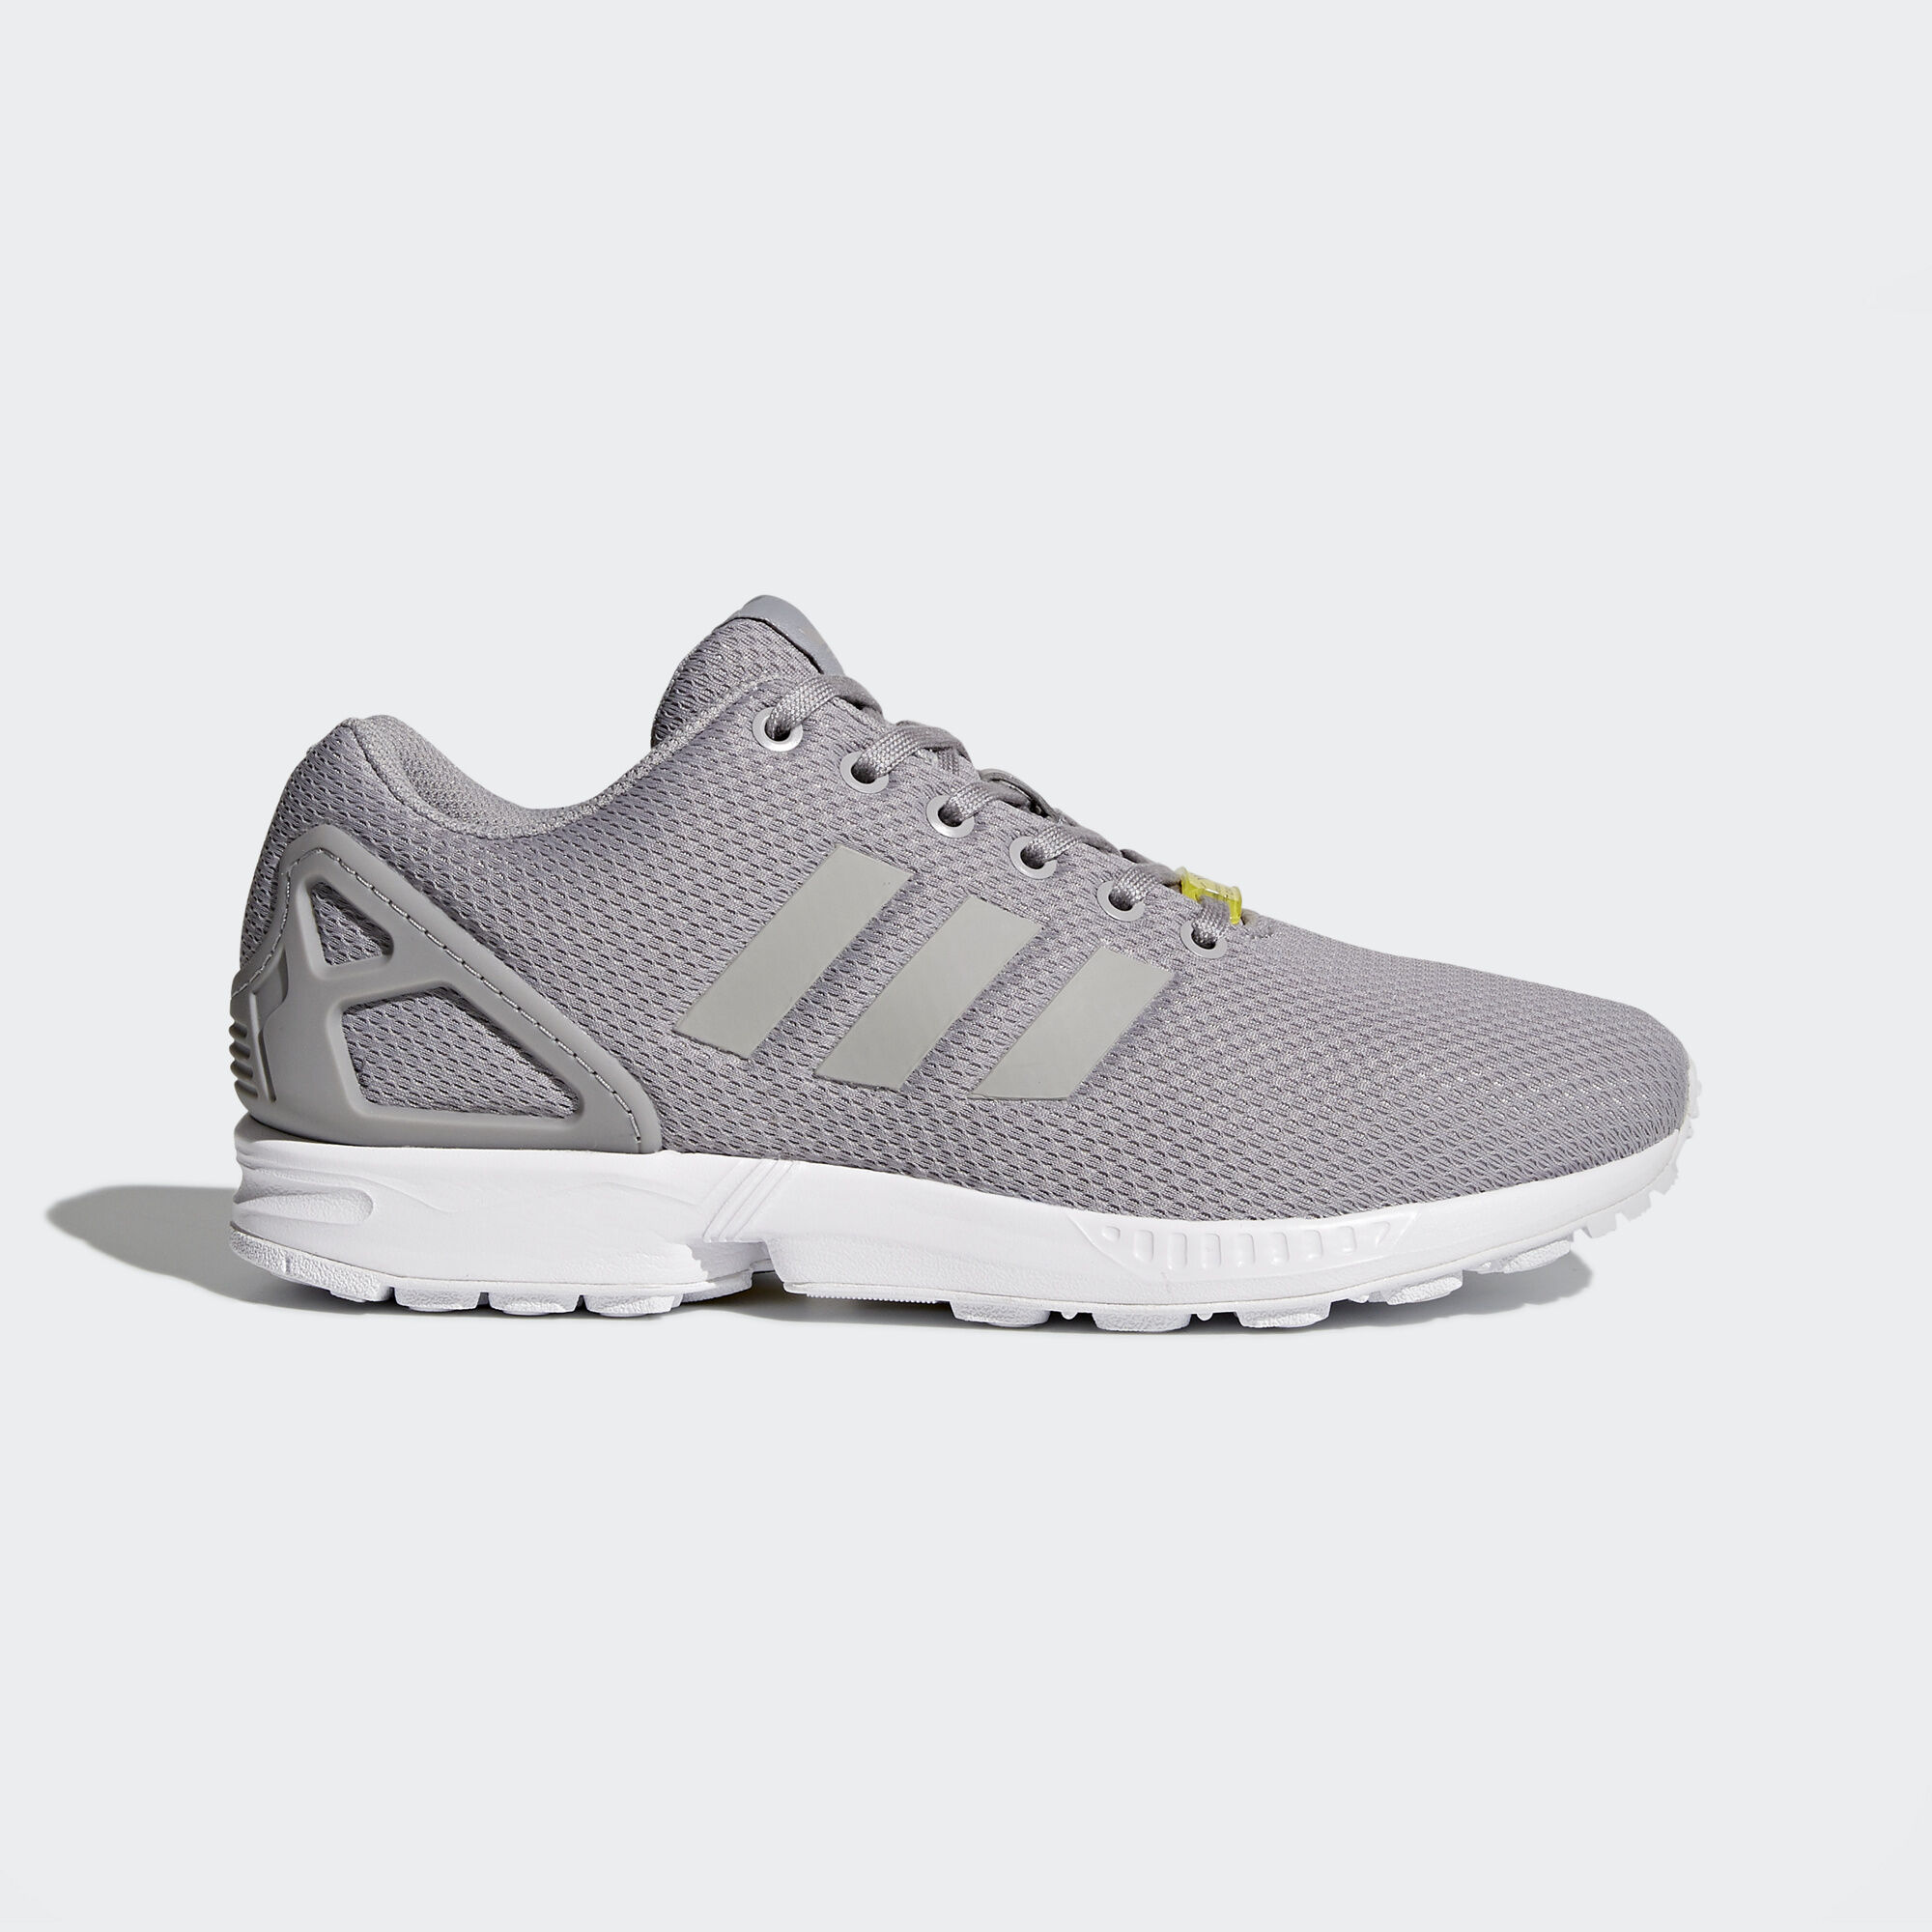 Adidas Zx Flux Light